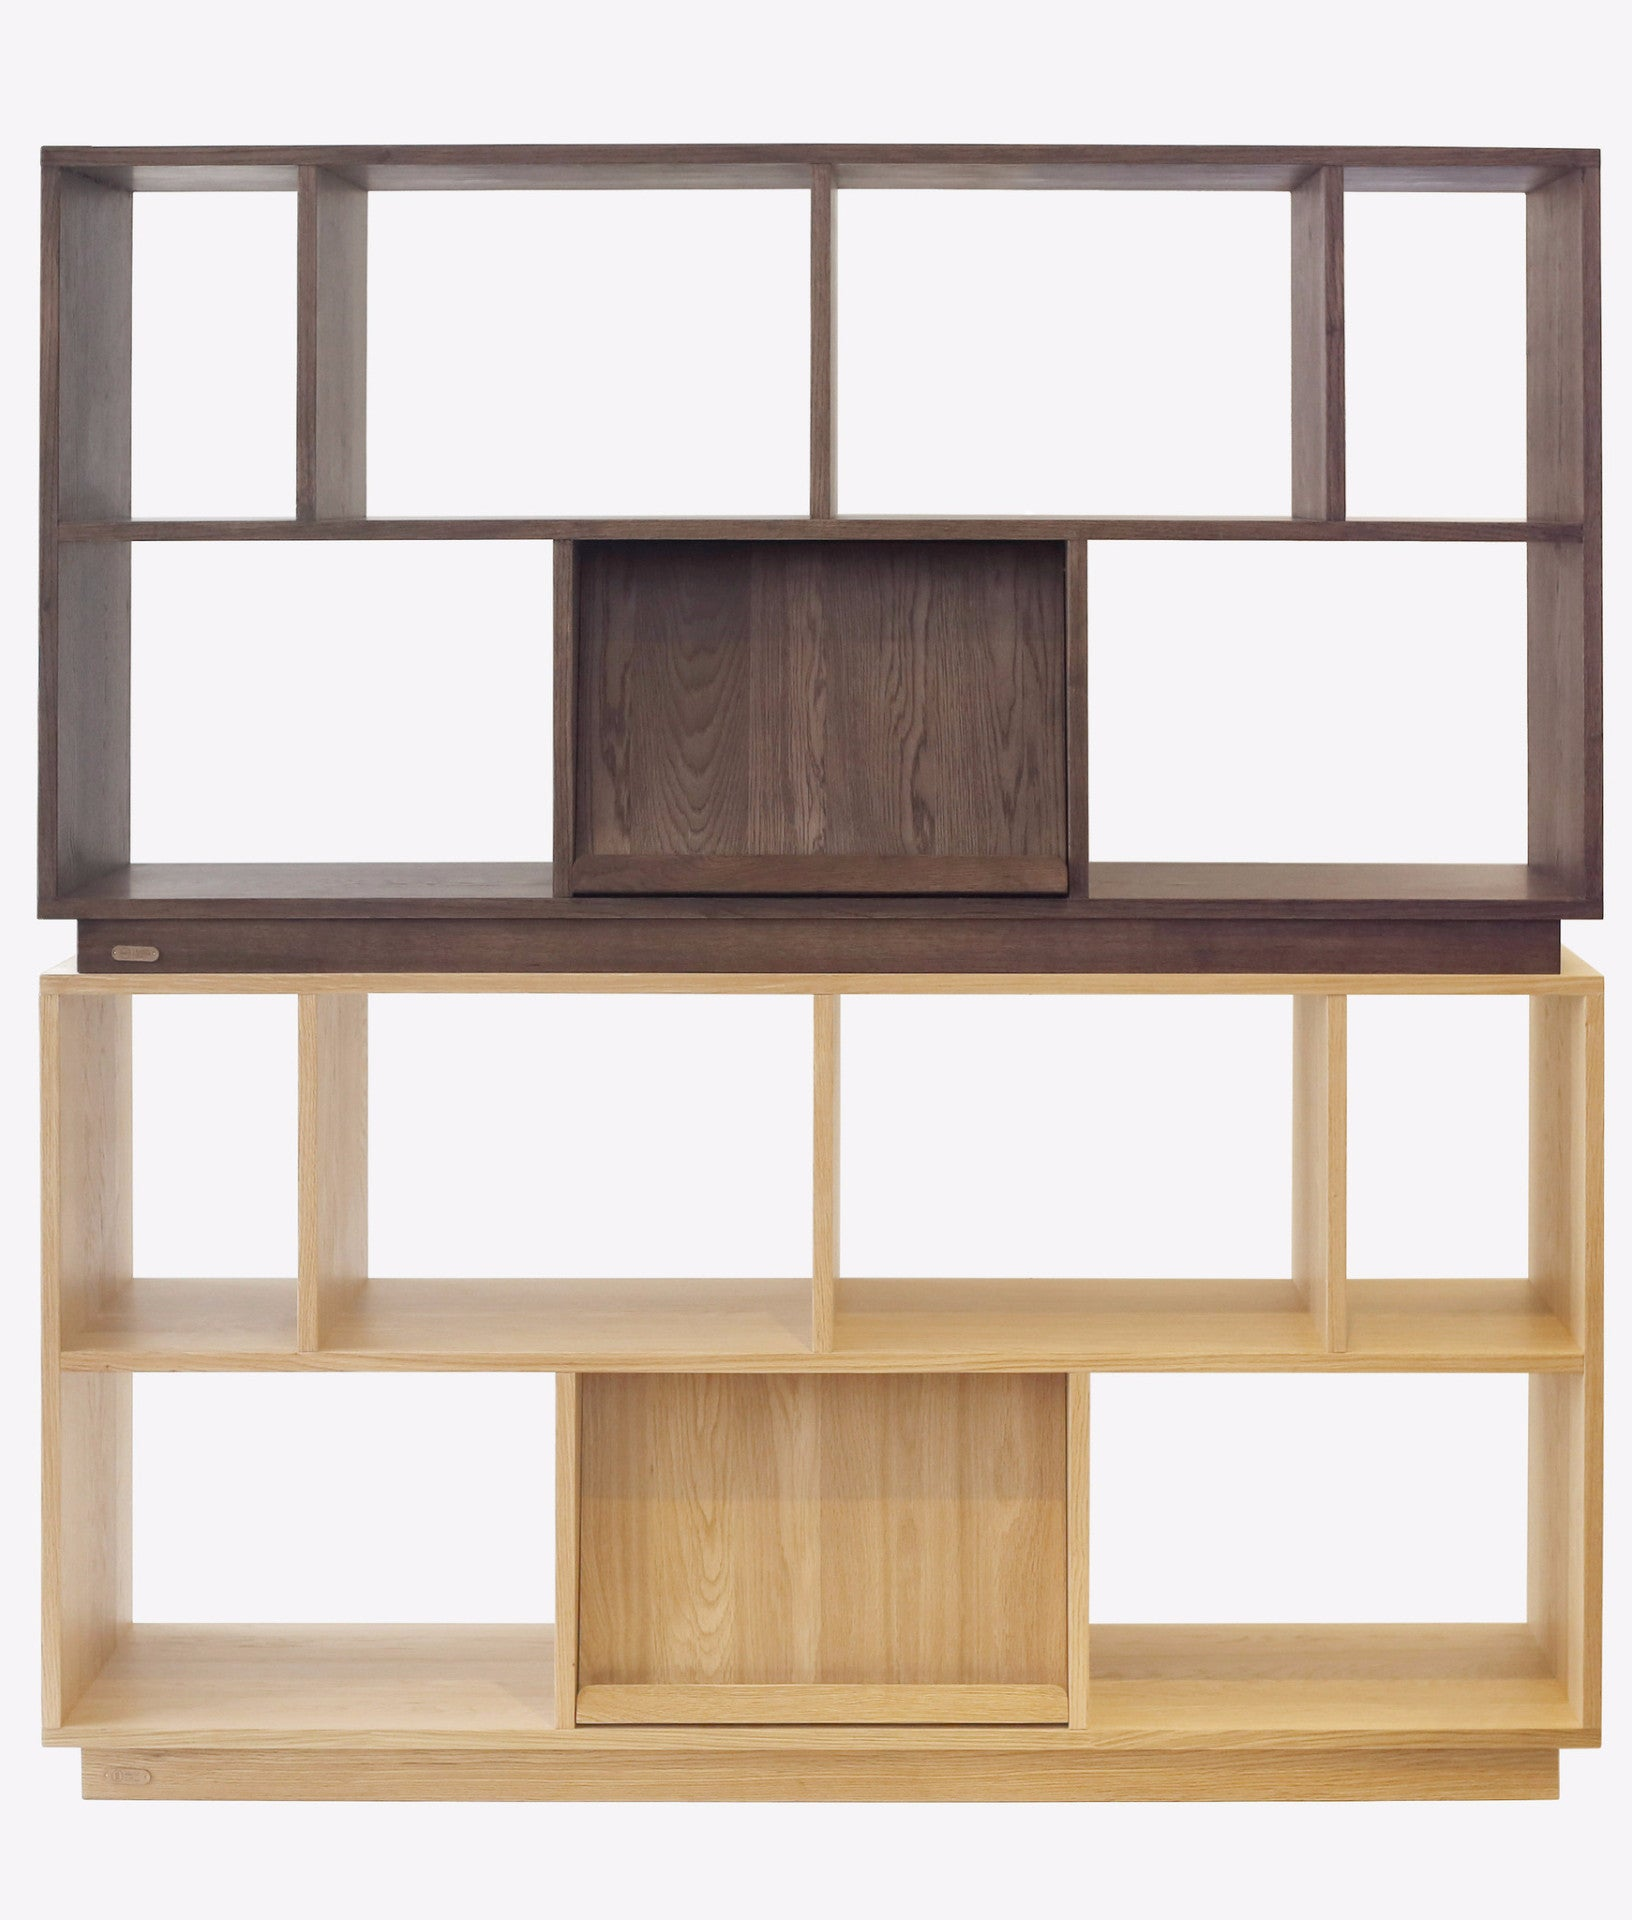 ZIINLIFE-KARLI-BOOKSHELF-MODULE-OAK-WALNUT